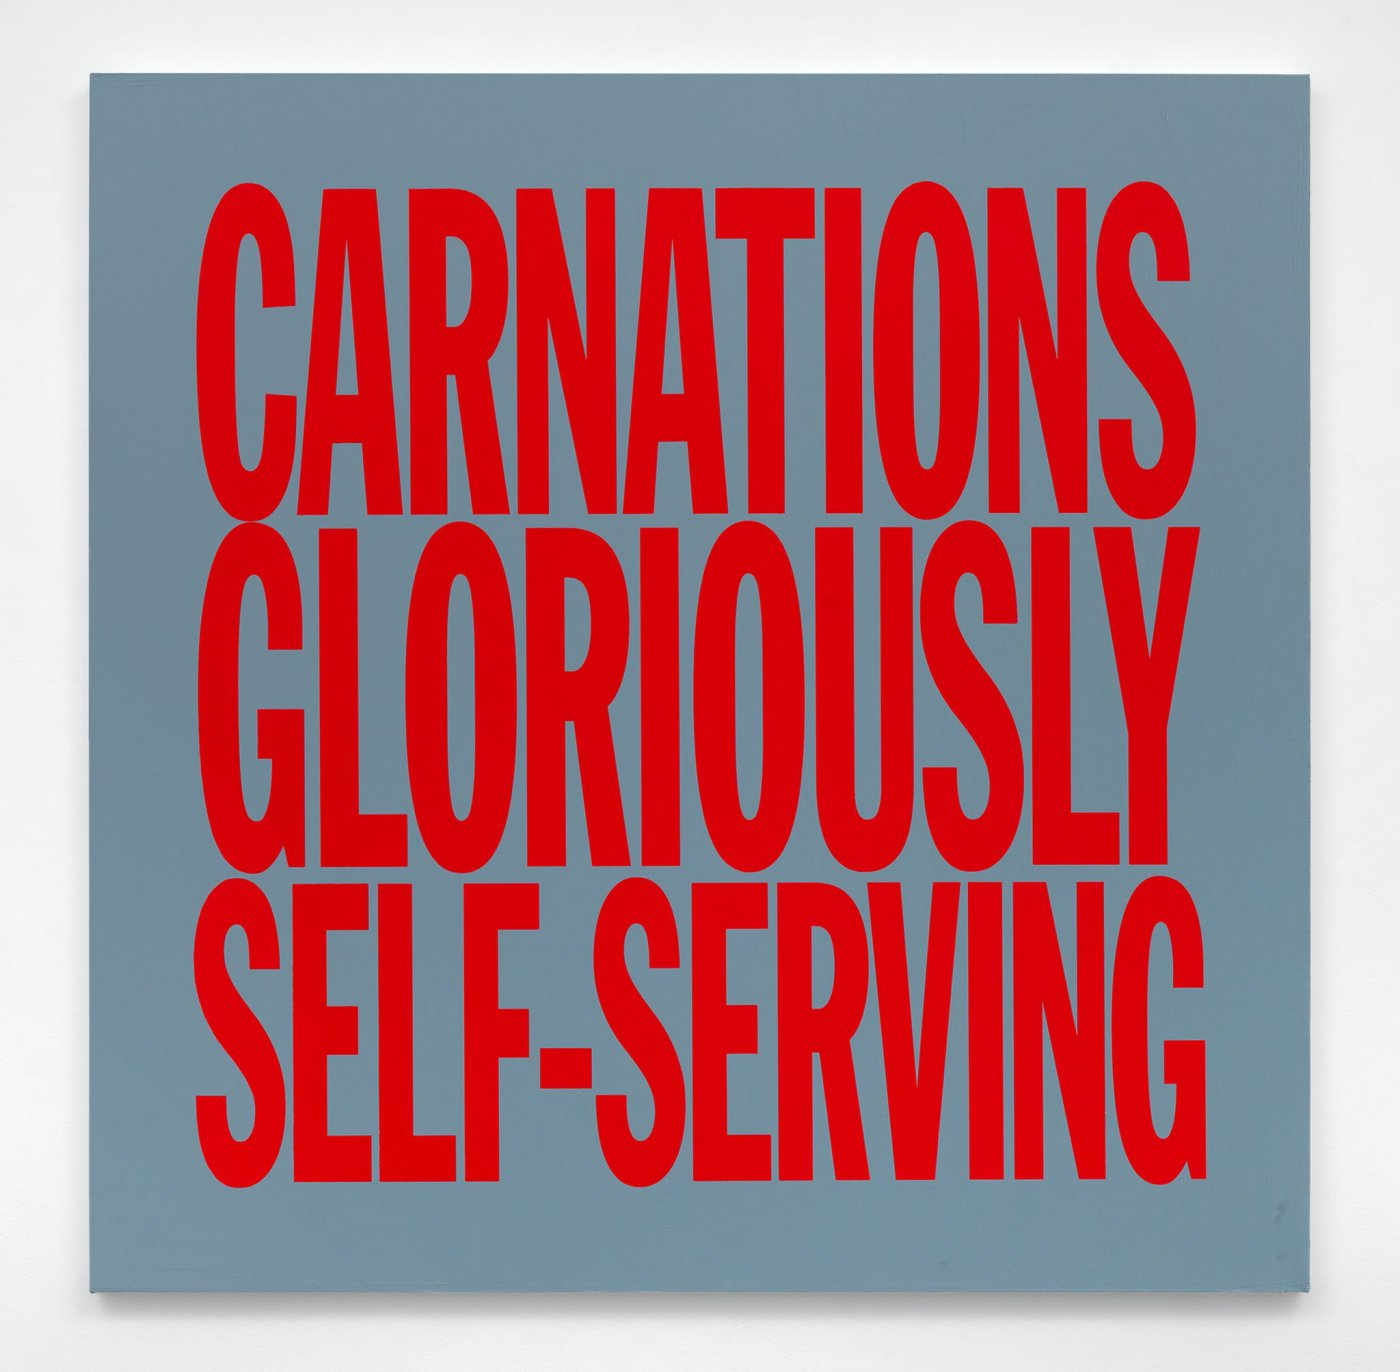 CARNATIONS GLORIOUSLY SELF-SERVING